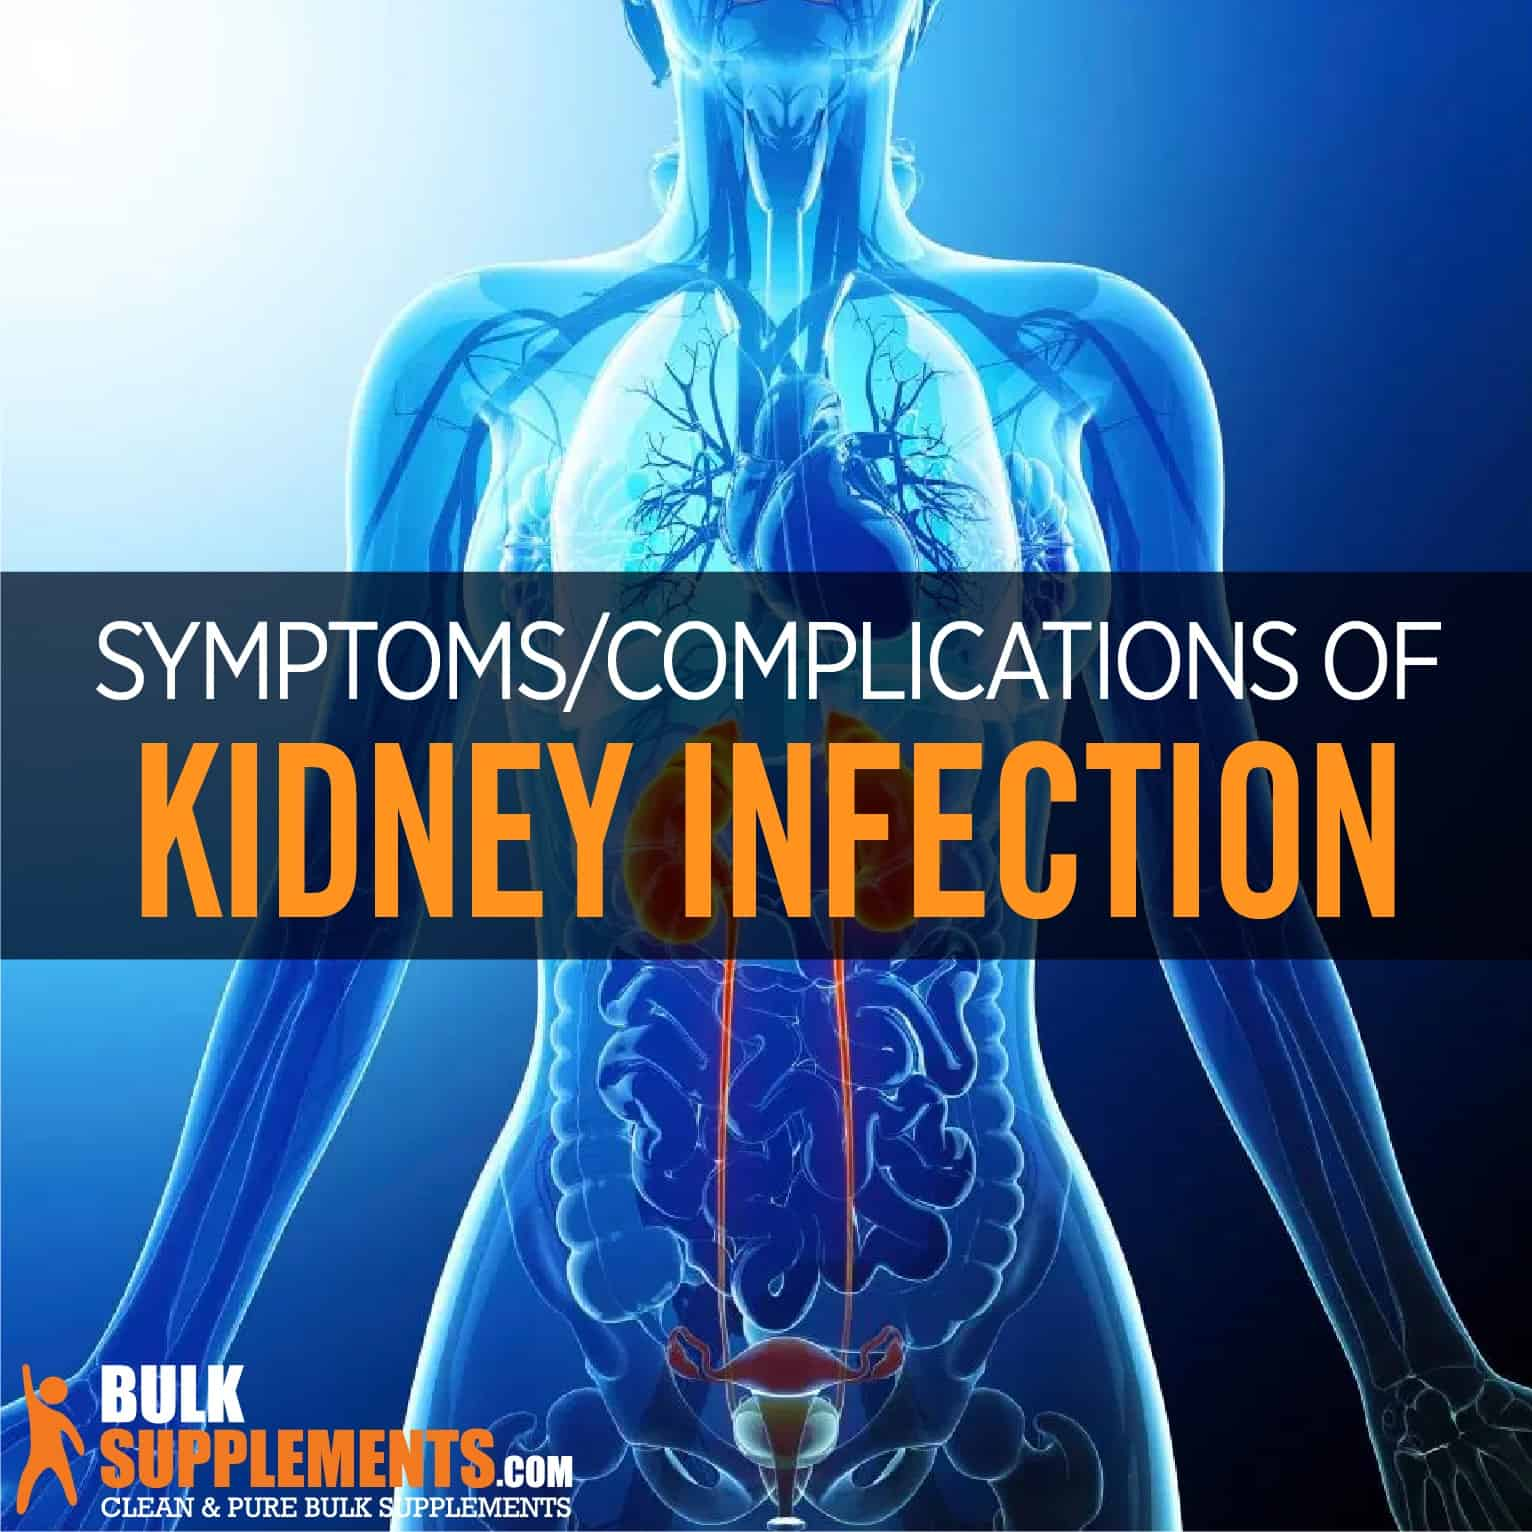 Kidney Infection Pyelonephritis Causes Symptoms Treatment